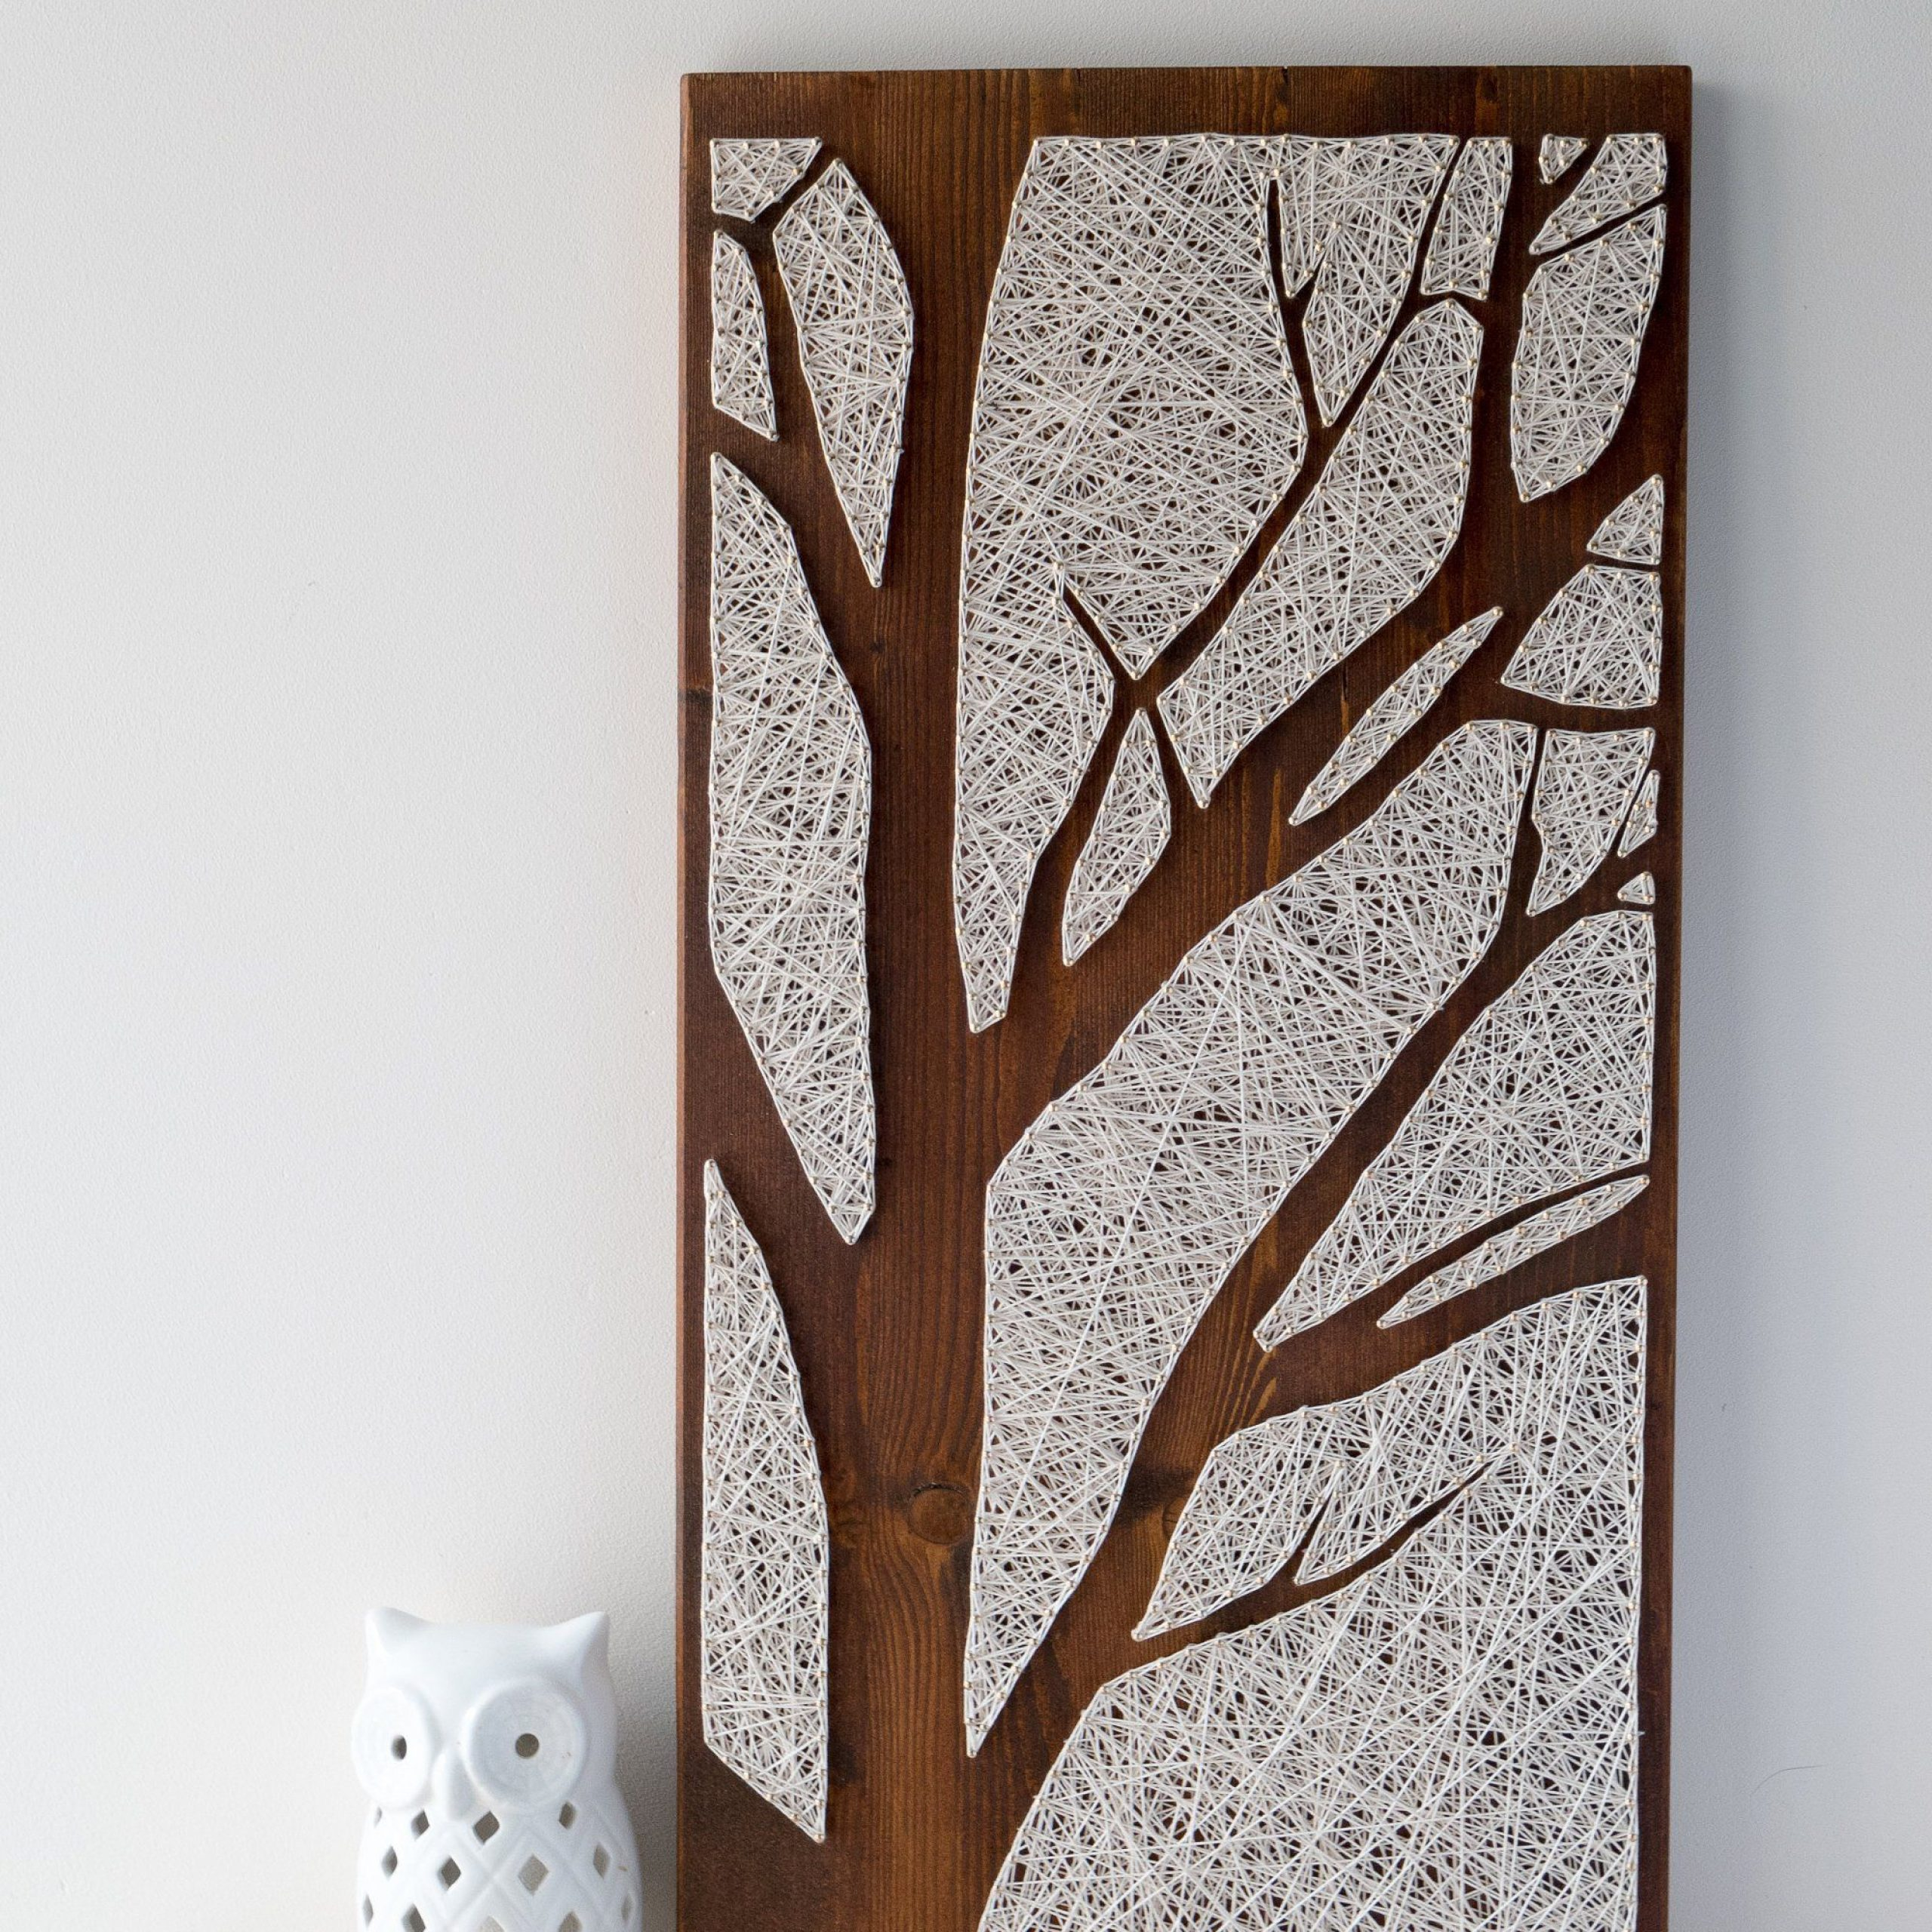 Tree Branch Wall Décor By Fleur De Lis Living Intended For Widely Used Pin On Featured Handmade Home Decor Curatedthe Handmade (View 14 of 20)